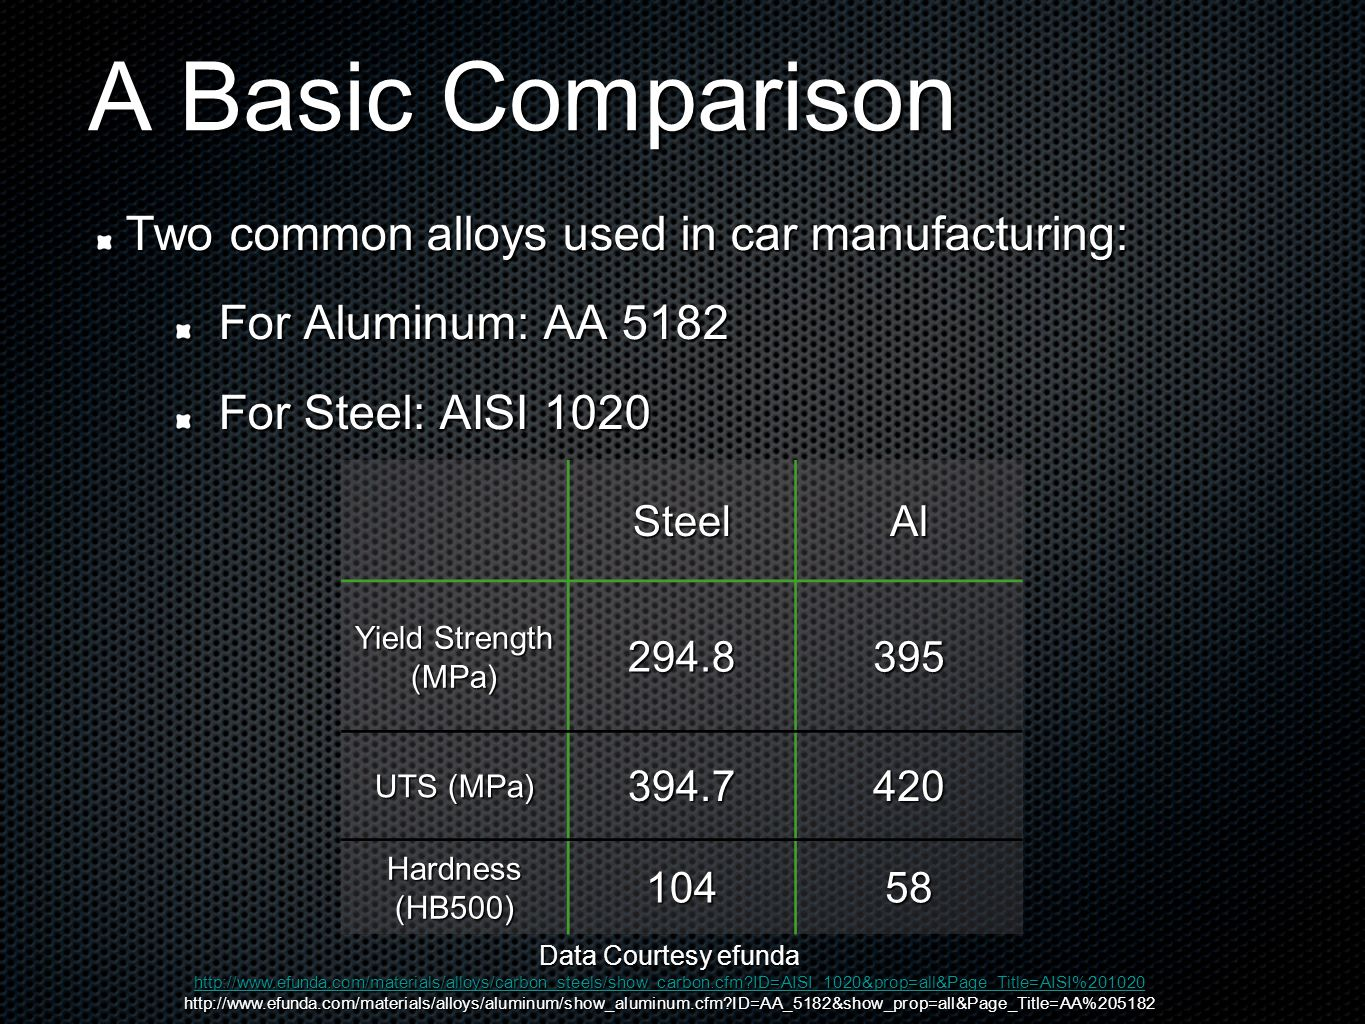 A Basic Comparison Two common alloys used in car manufacturing: For Aluminum: AA 5182 For Steel: AISI 1020 SteelAl Yield Strength (MPa)294.8395 UTS (MPa) 394.7420 Hardness (HB500) 10458 Data Courtesy efunda http://www.efunda.com/materials/alloys/carbon_steels/show_carbon.cfm?ID=AISI_1020&prop=all&Page_Title=AISI%201020 http://www.efunda.com/materials/alloys/aluminum/show_aluminum.cfm?ID=AA_5182&show_prop=all&Page_Title=AA%205182